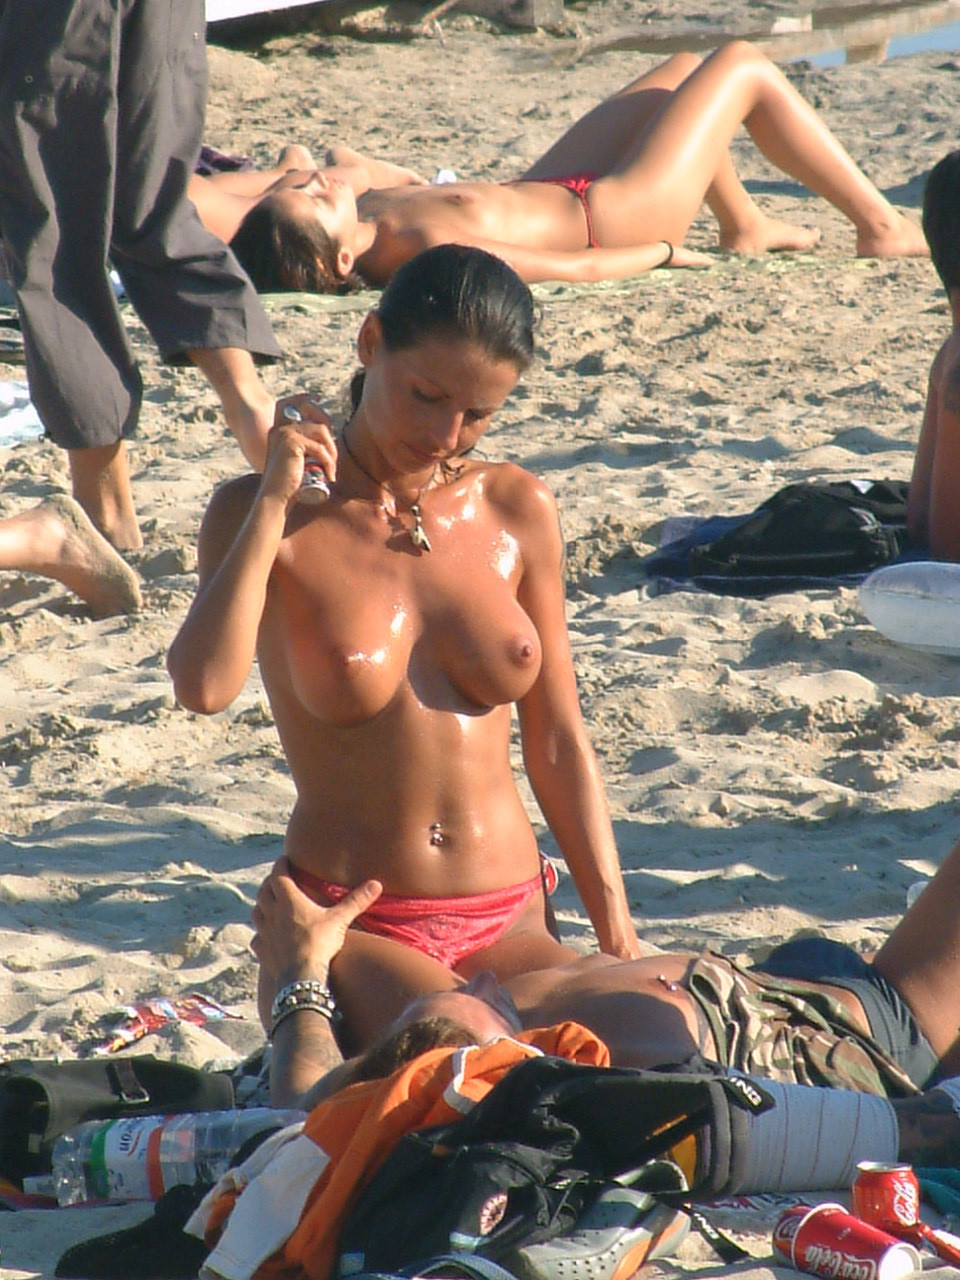 nudists-girls-boobs-beach-topless-mix-vol7-69